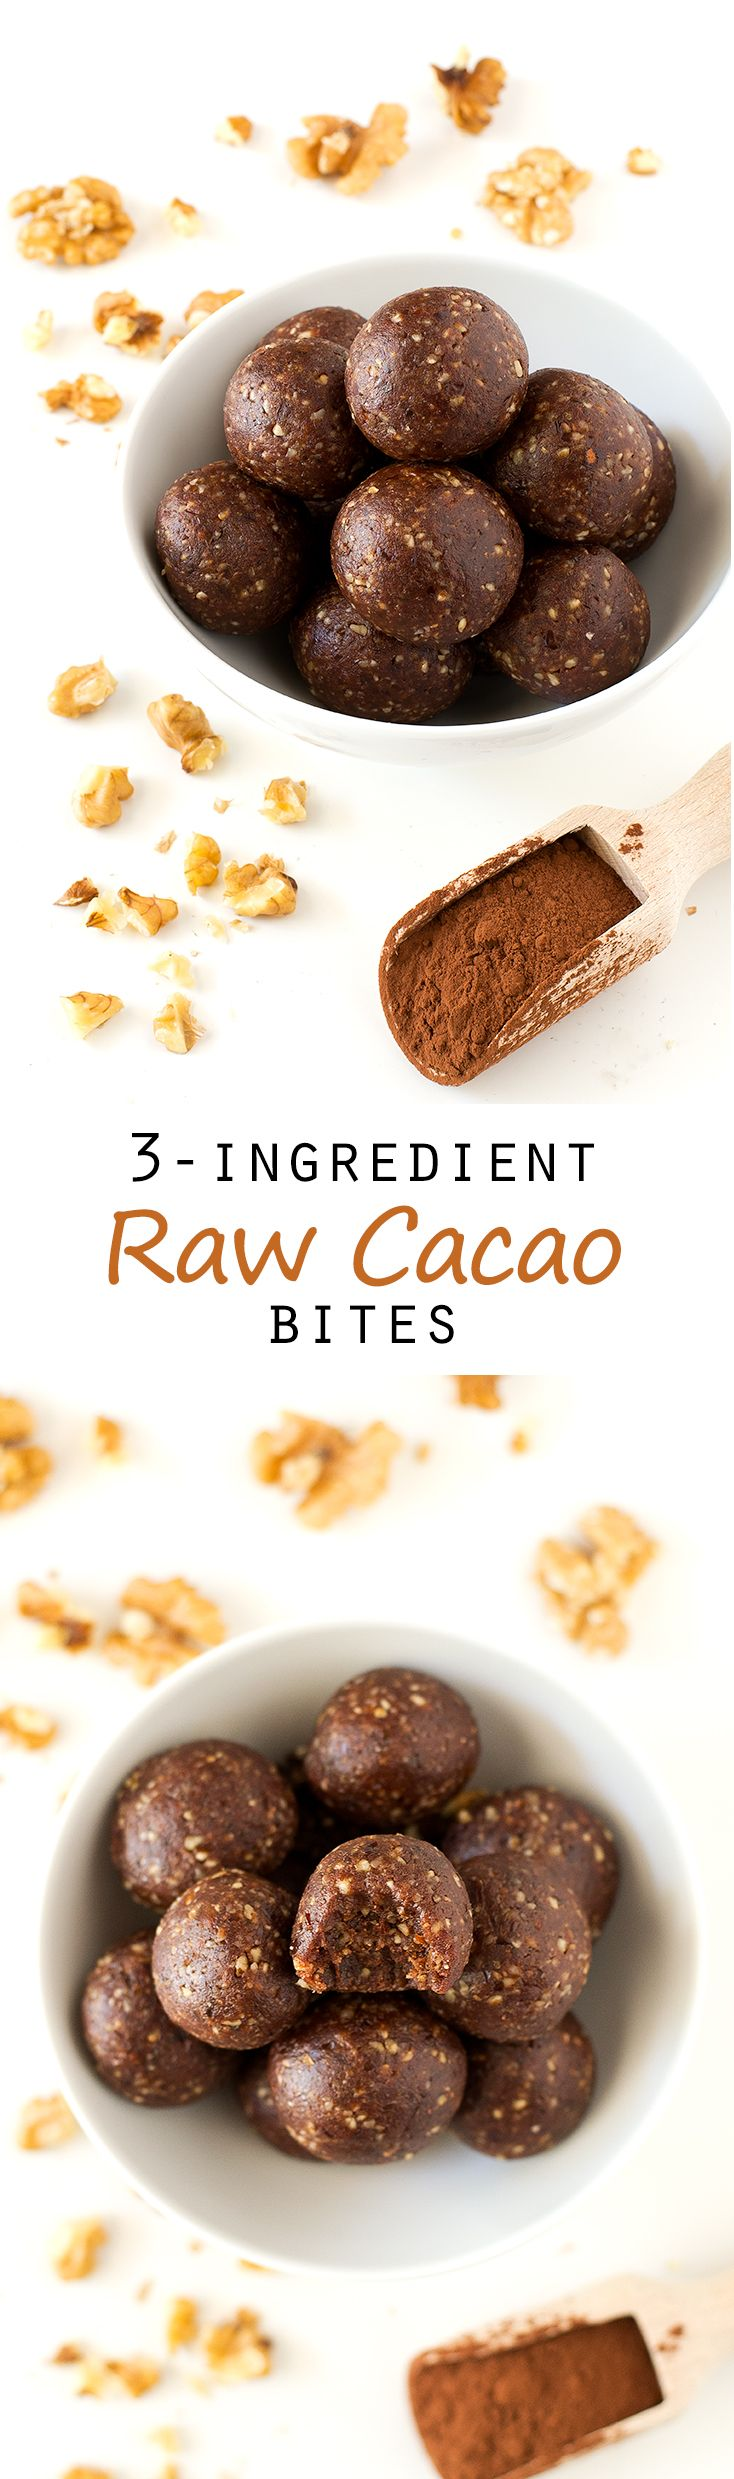 3-Ingredient Raw Cacao Bites #vegan #glutenfree                                                                                                                                                                                 More